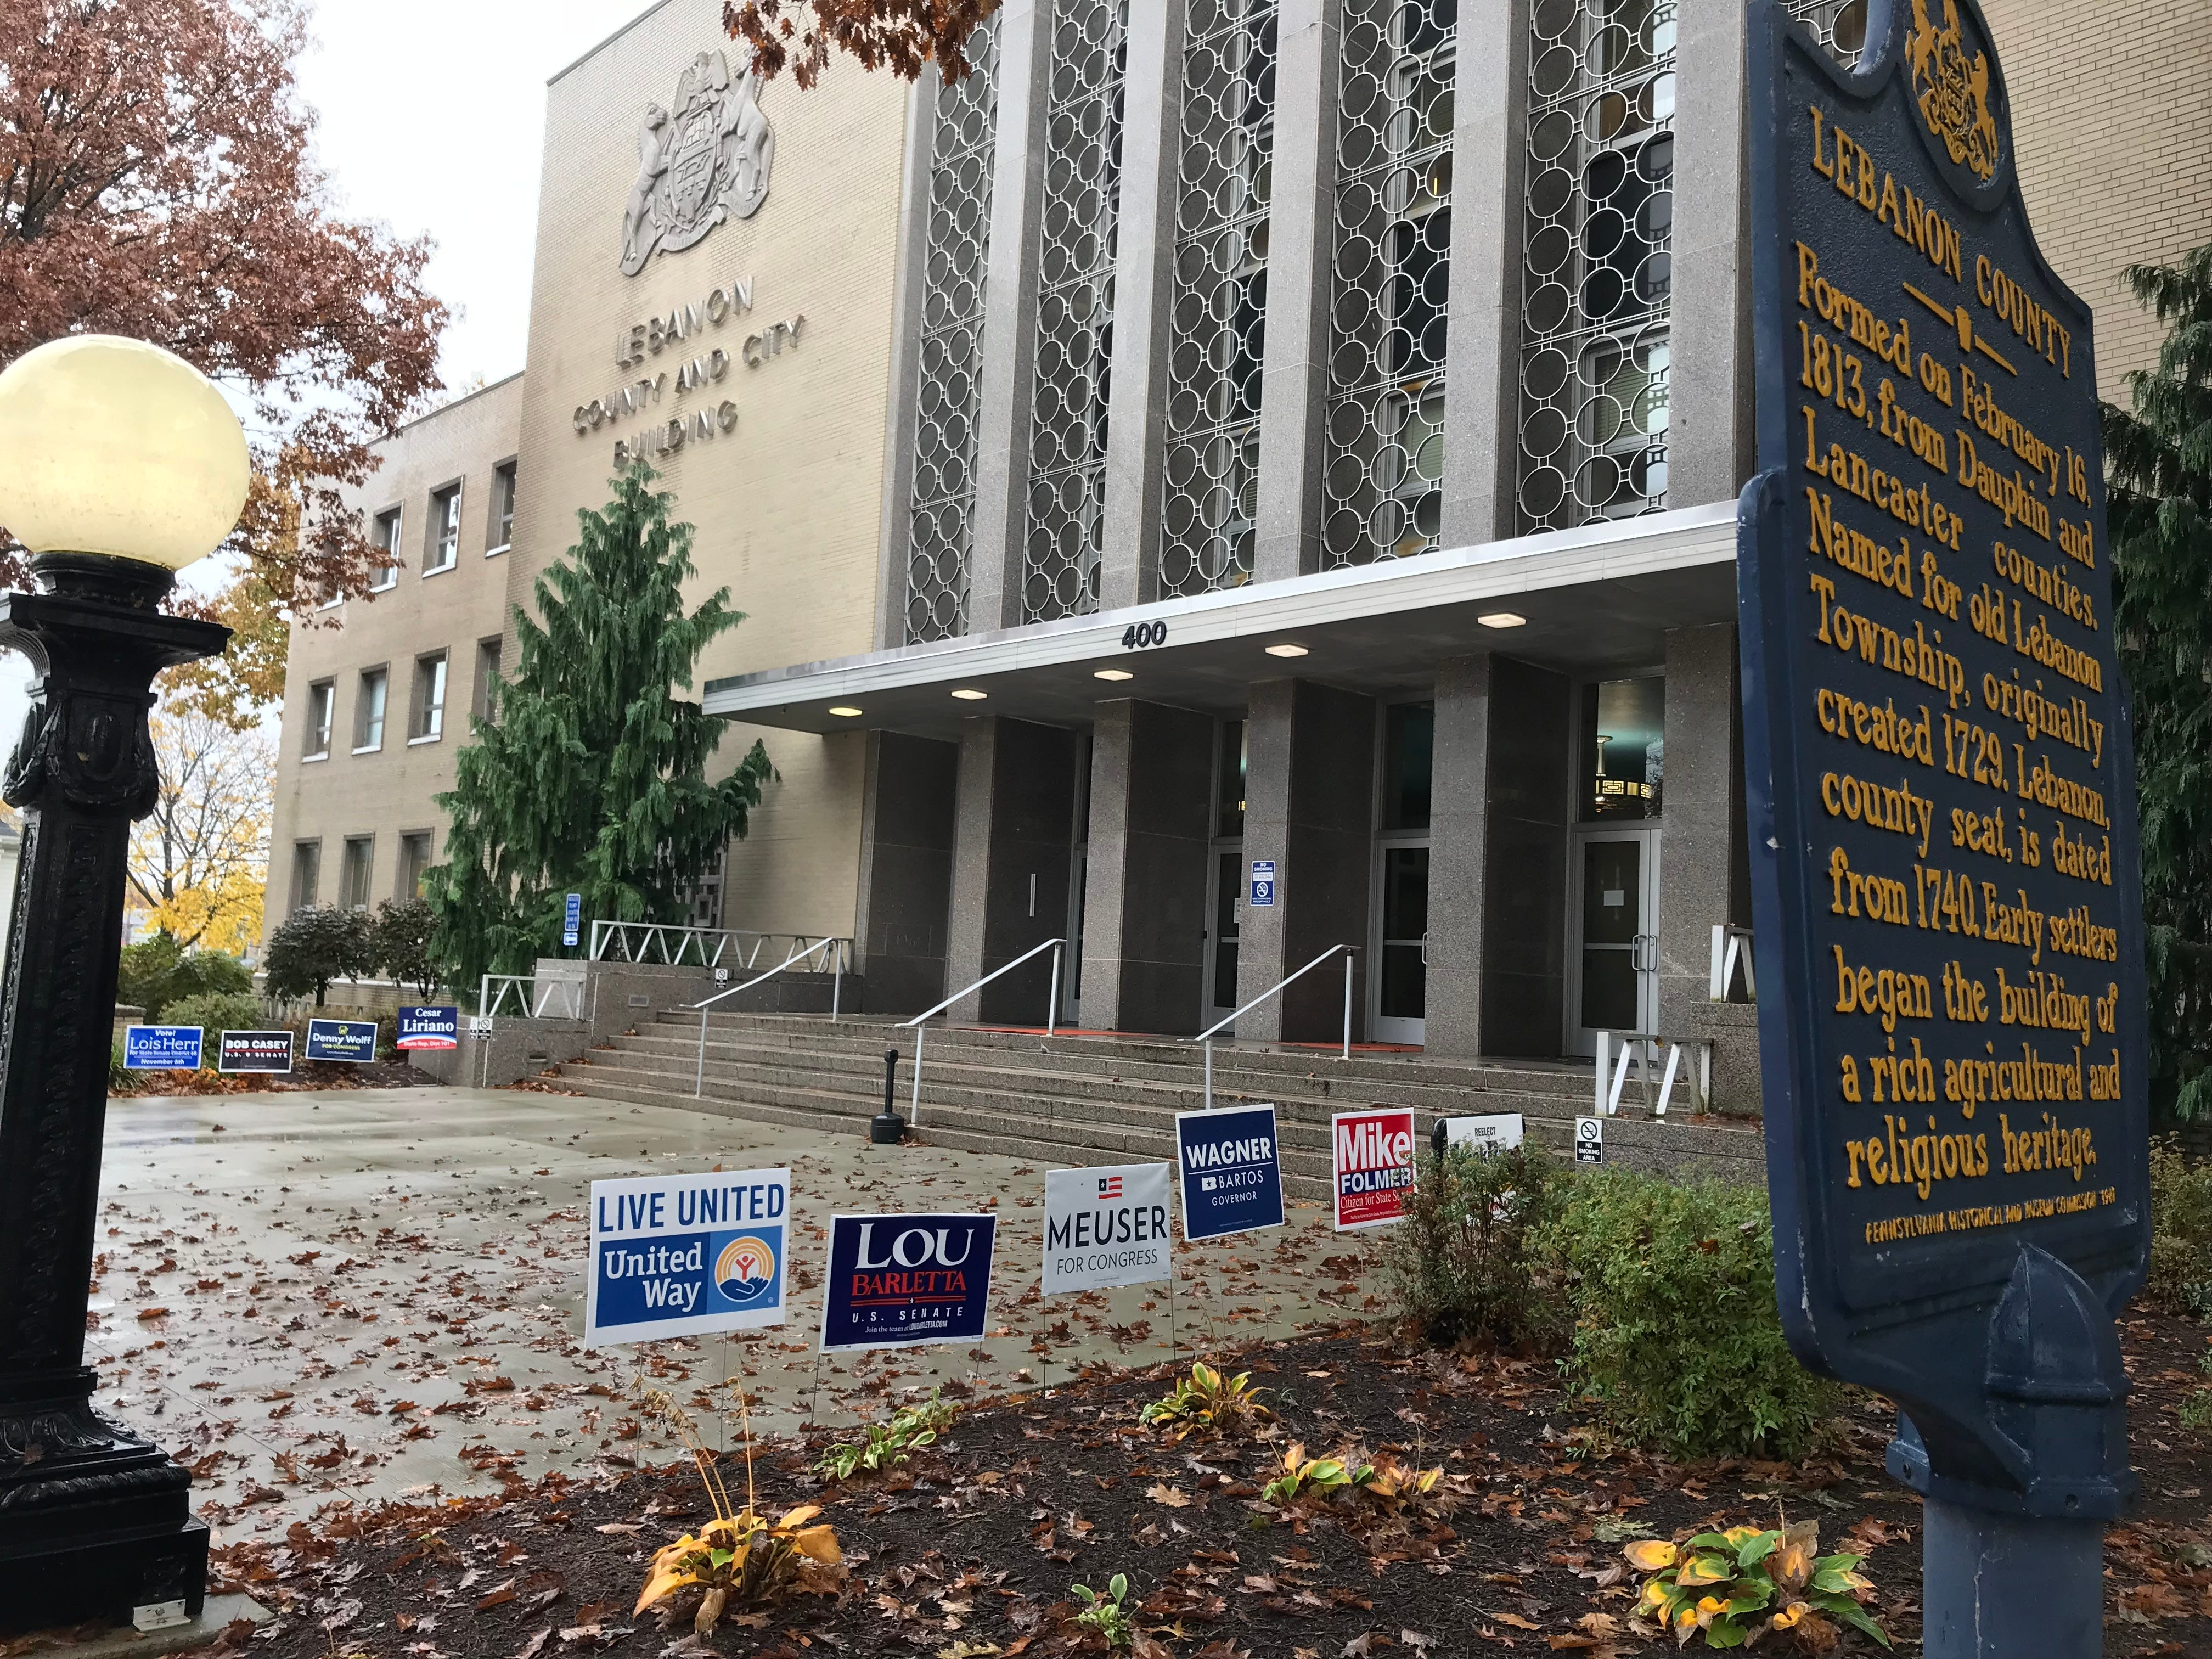 Campaign signs outside of the Lebanon County Courthouse during the midterm elections Nov. 16, 2018.